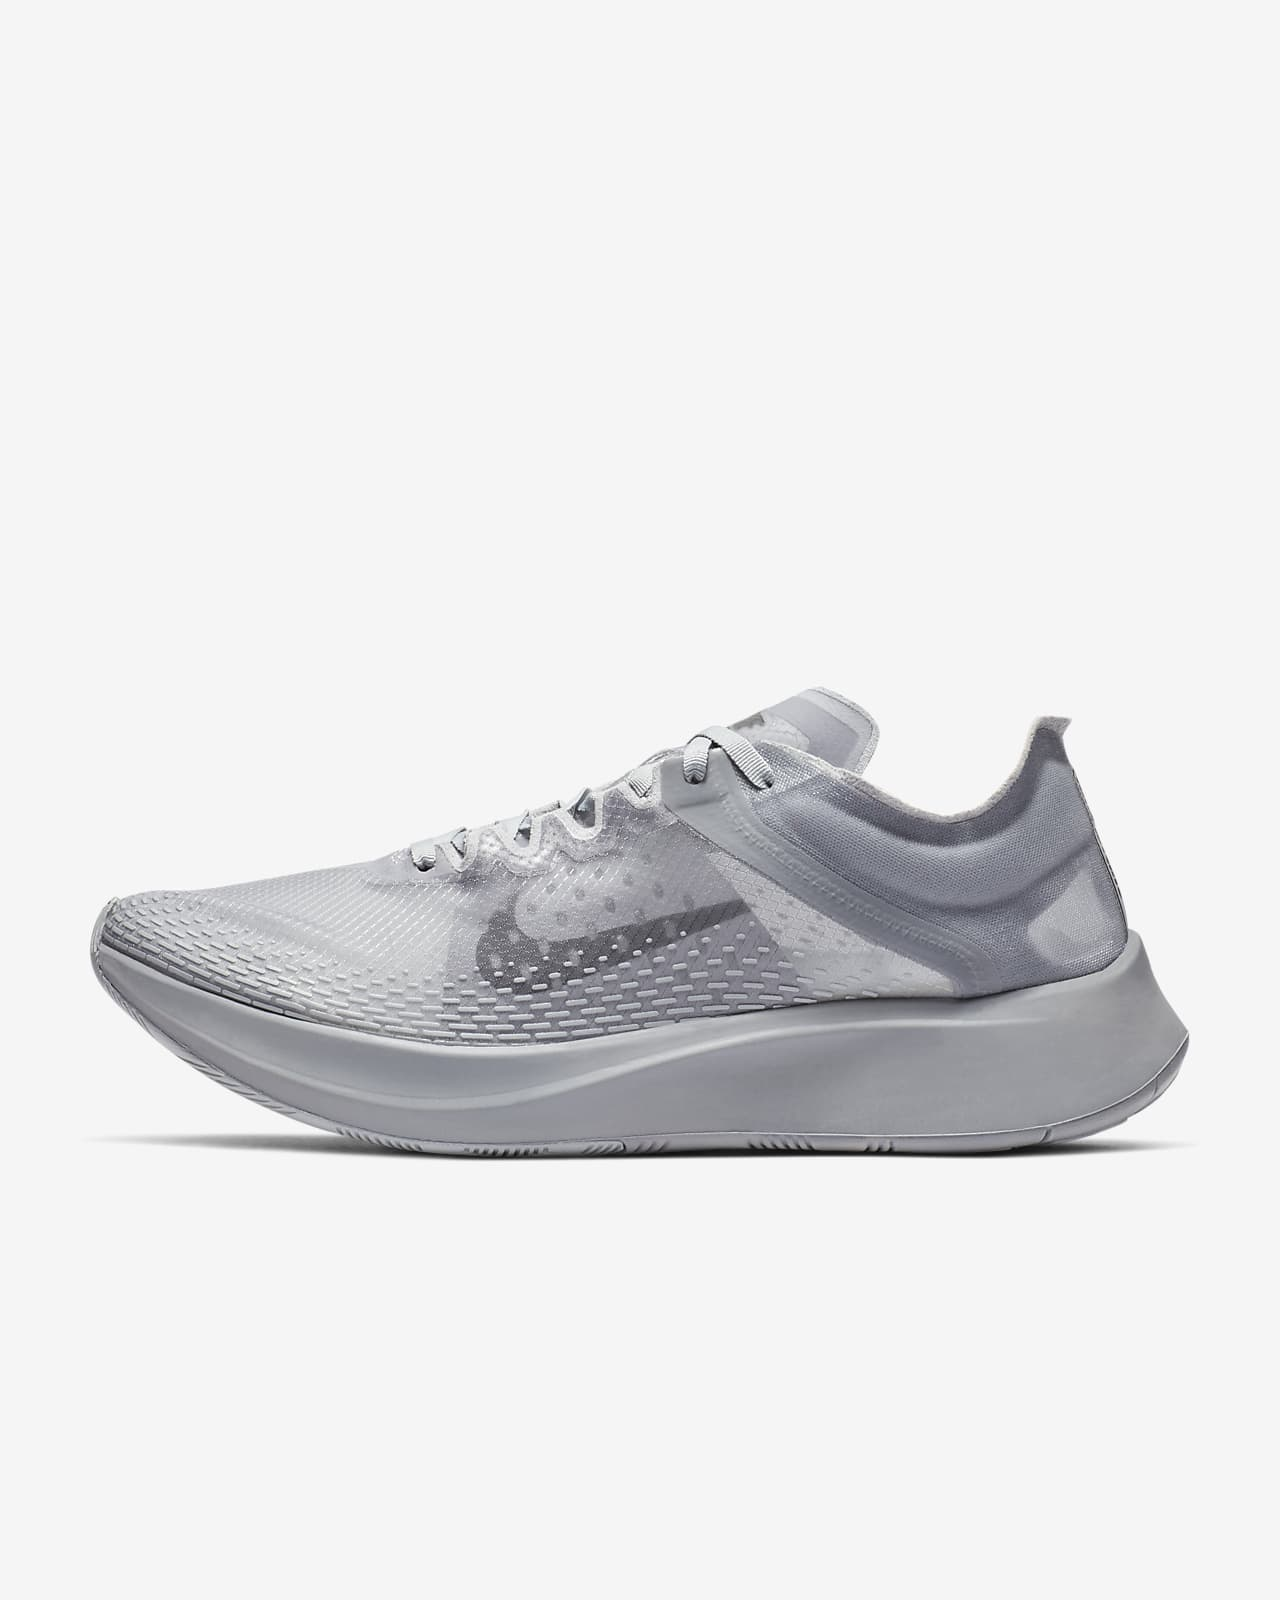 Nike Zoom Fly SP Fast Unisex Running